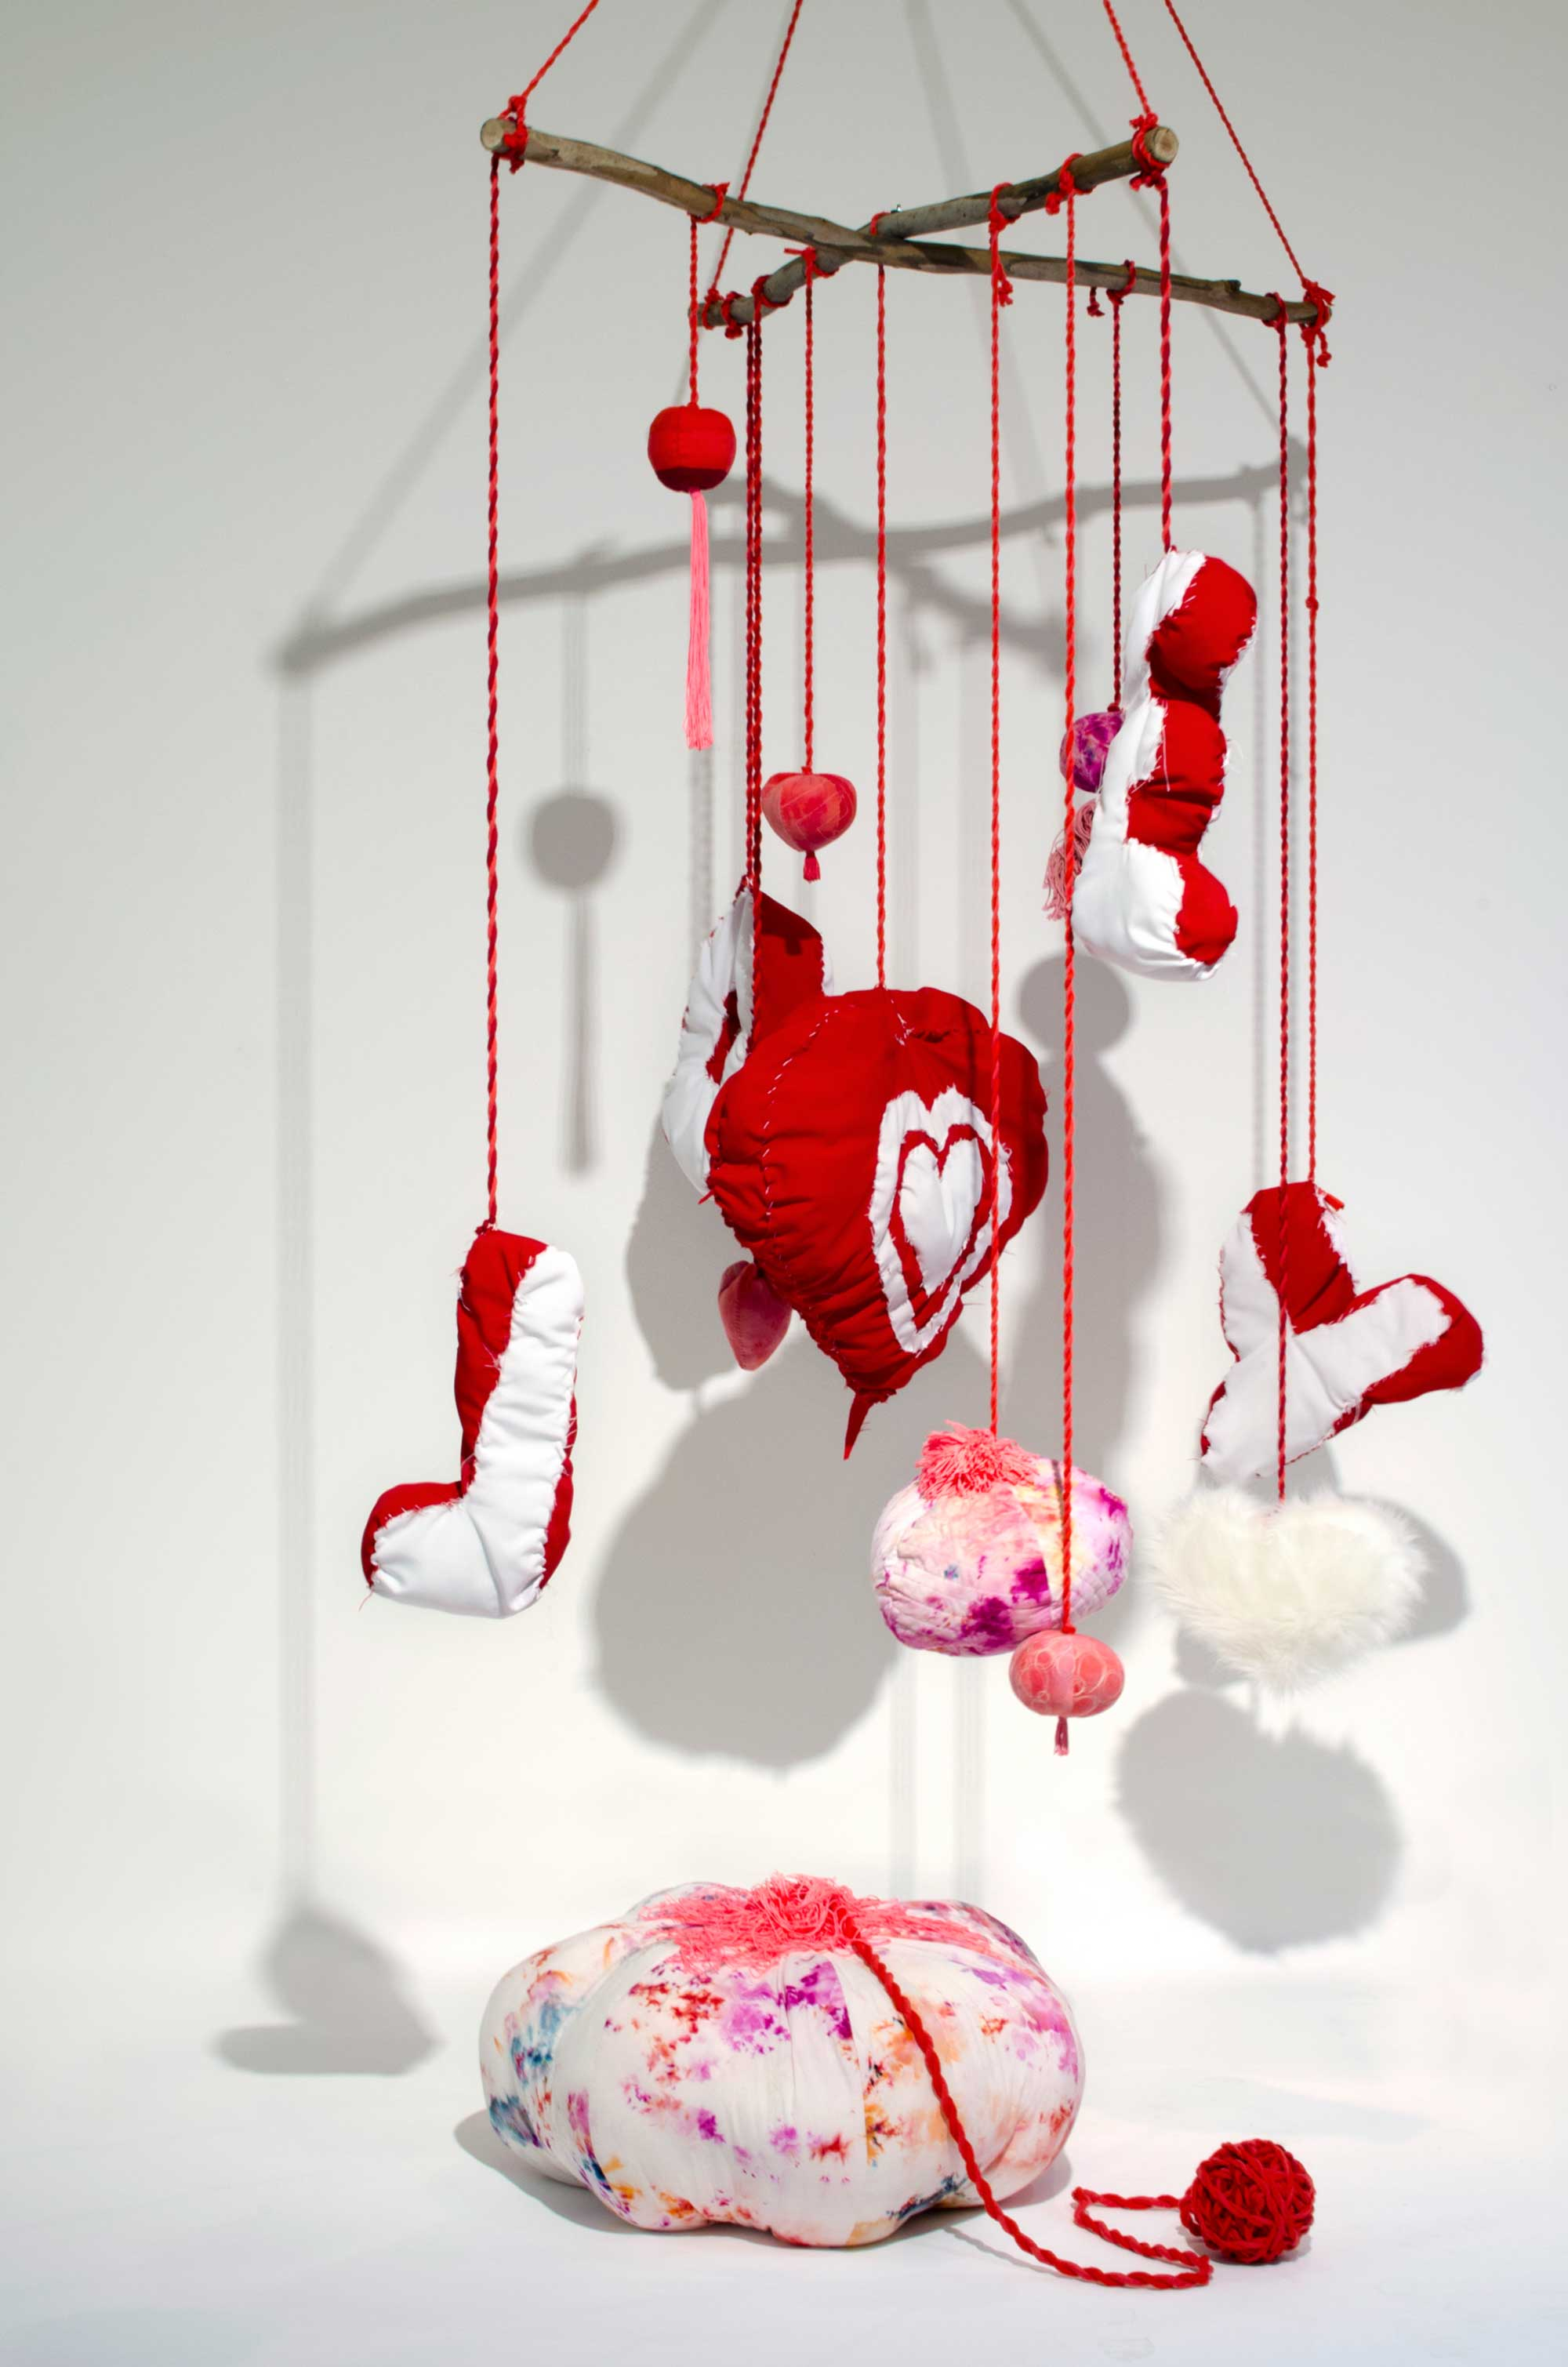 'Love Mobile' 2020, Mark Smith and Dell Stewart, ice-dyed cotton, polyester fill and trims, cotton rope, dimensions variable. Photo: courtesy of Tamworth Regional Gallery.